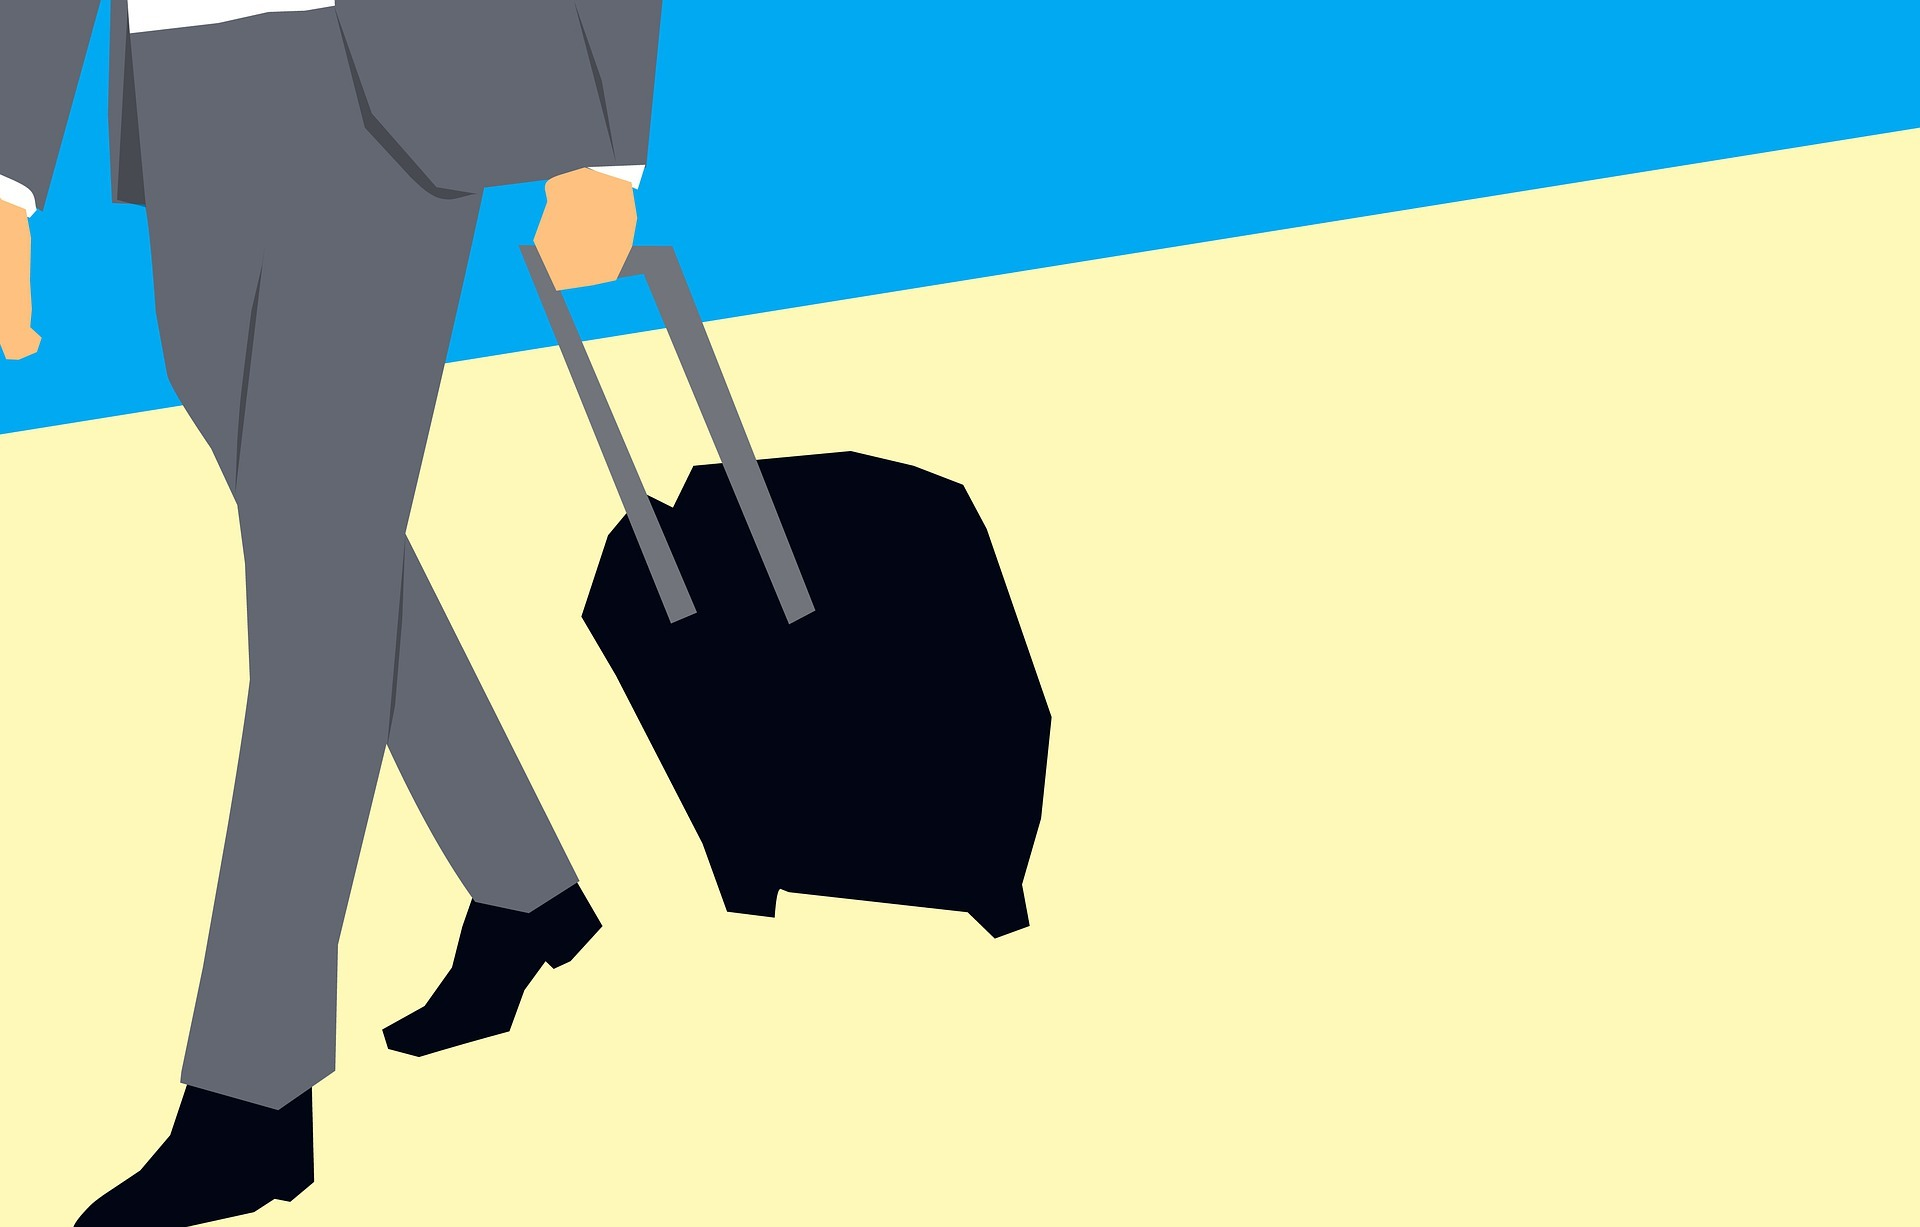 Shadow figure with a suitcase